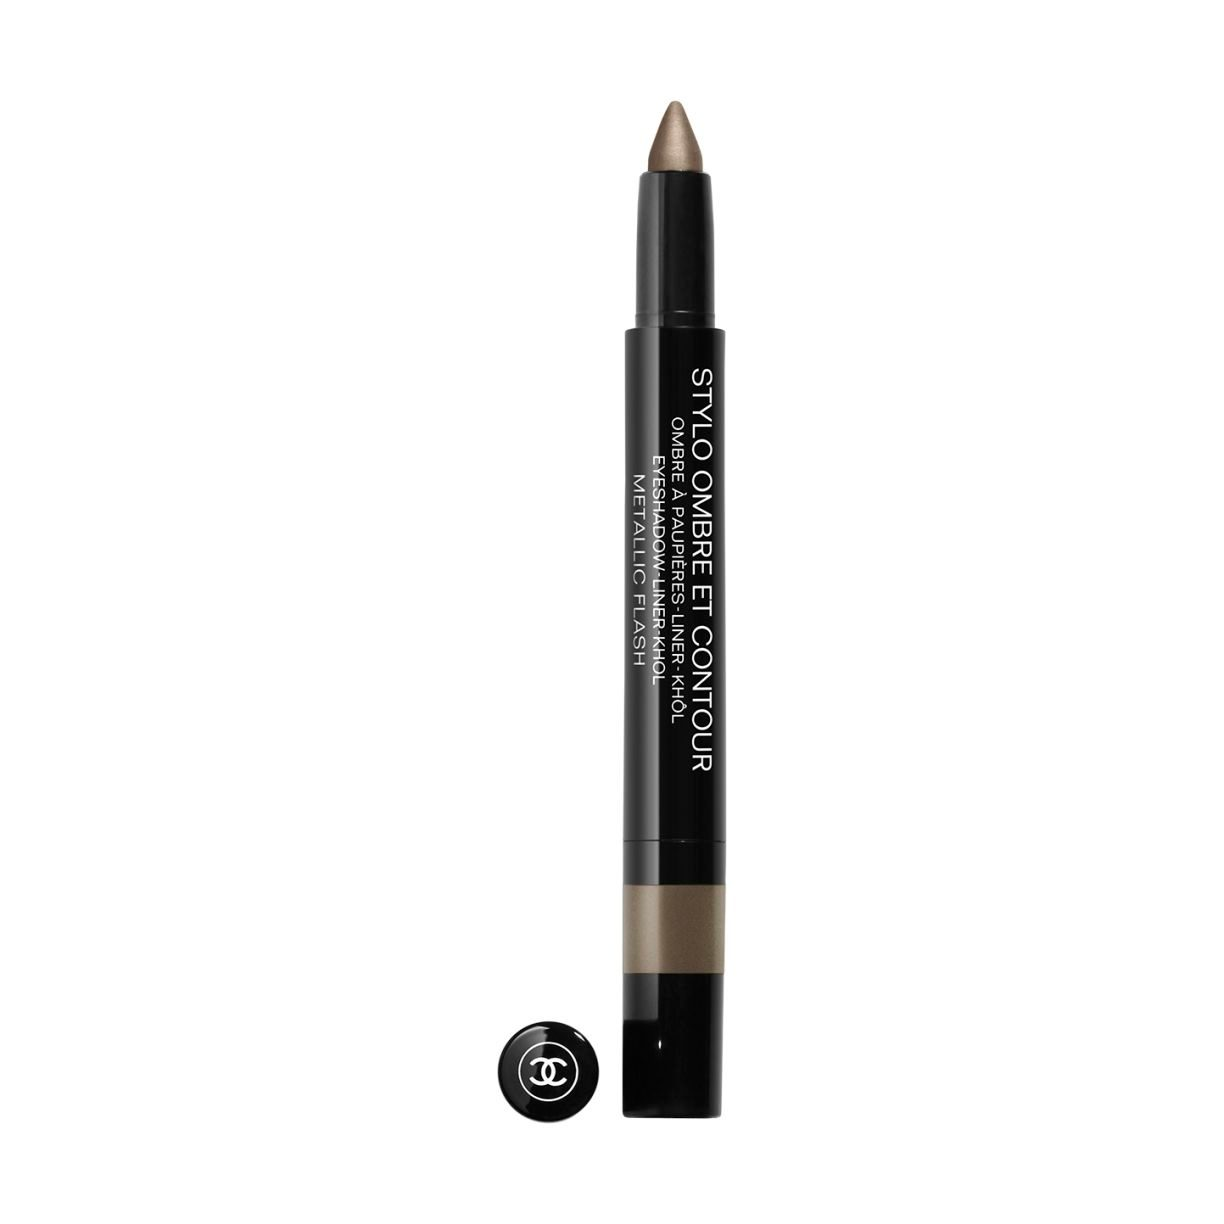 STYLO OMBRE ET CONTOUR Eyeshadow - Liner - Kohl 224 - METALLIC FLASH